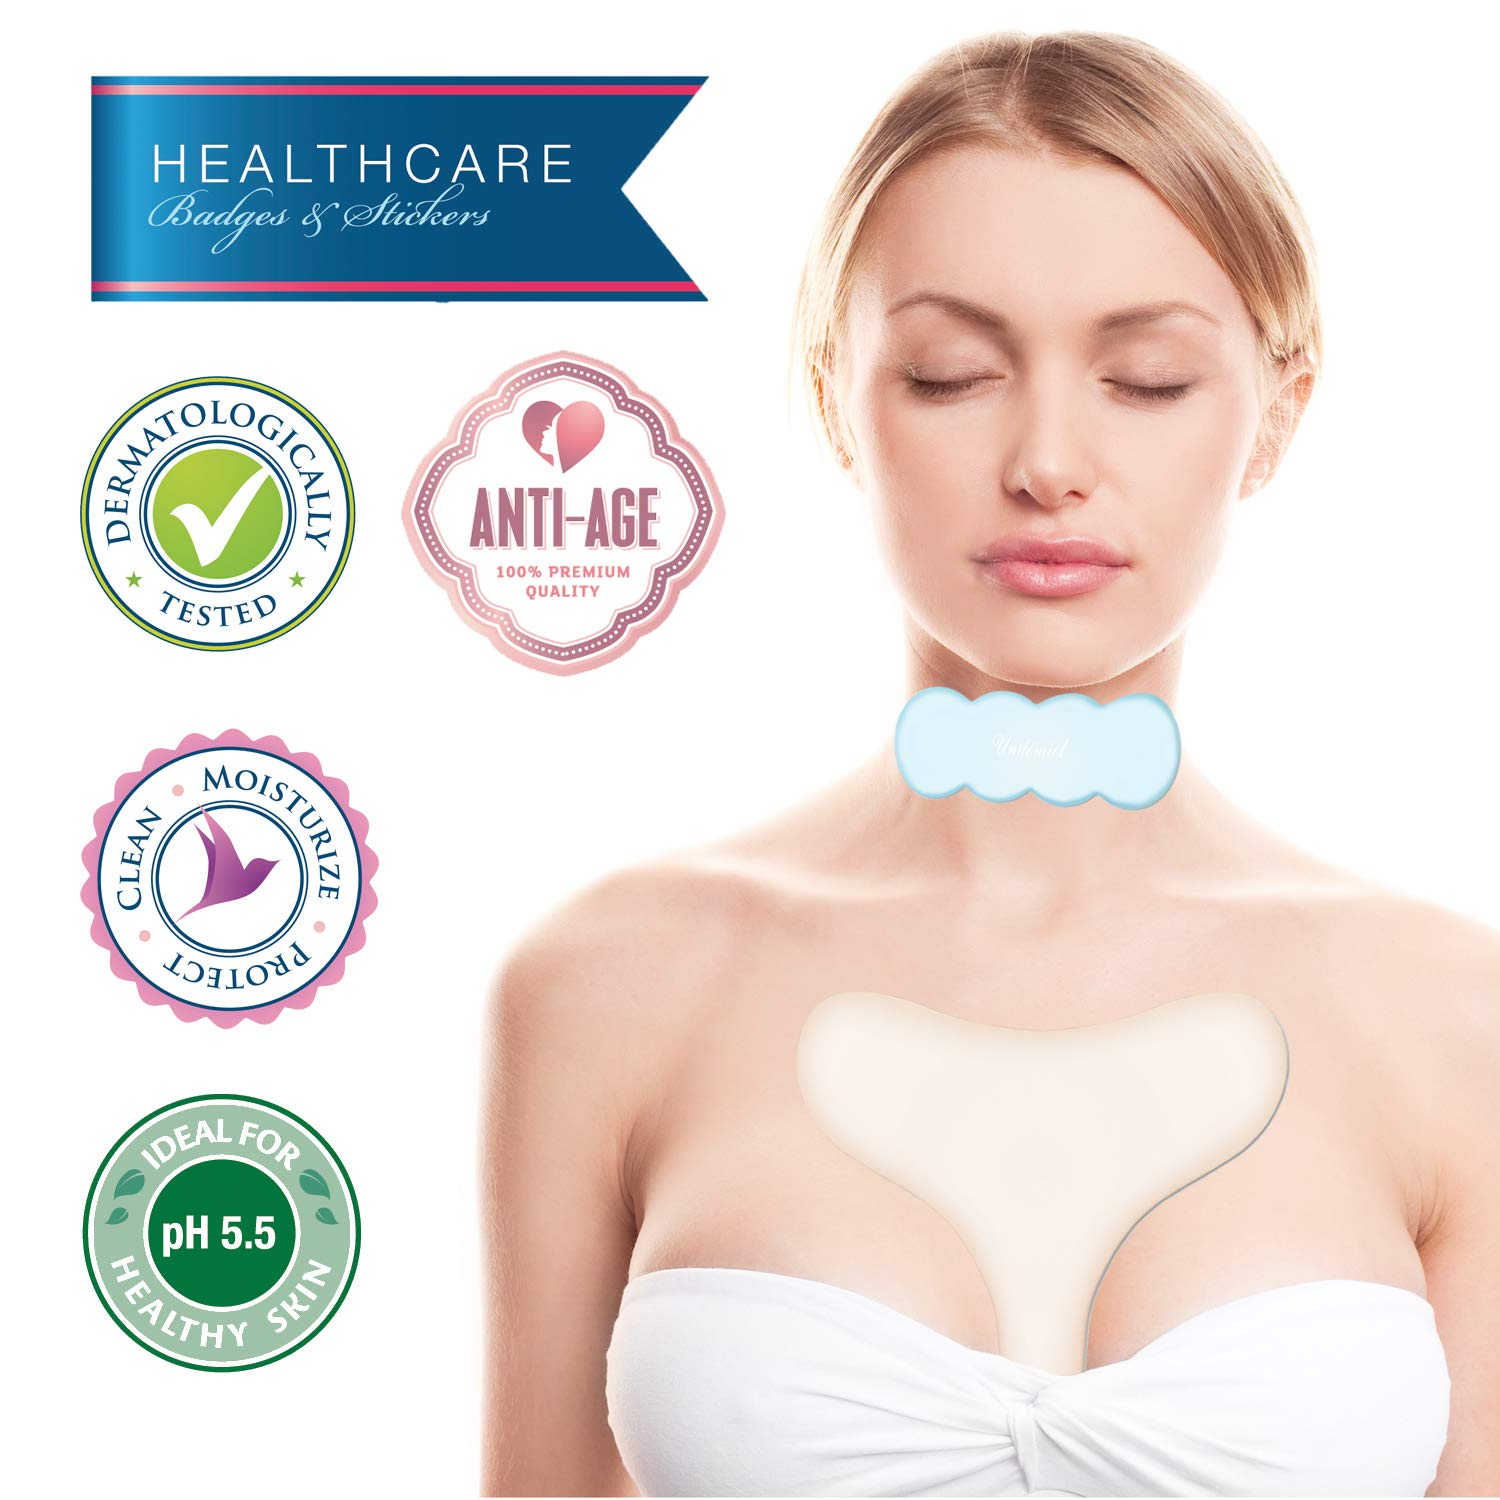 UNDOMIEL Beauty Healthcare Smoothing Silicone Pads For Chest & Neck Anti Wrinkle Prevent Stretch Improve Sleeping Medical treatment (Pearl)